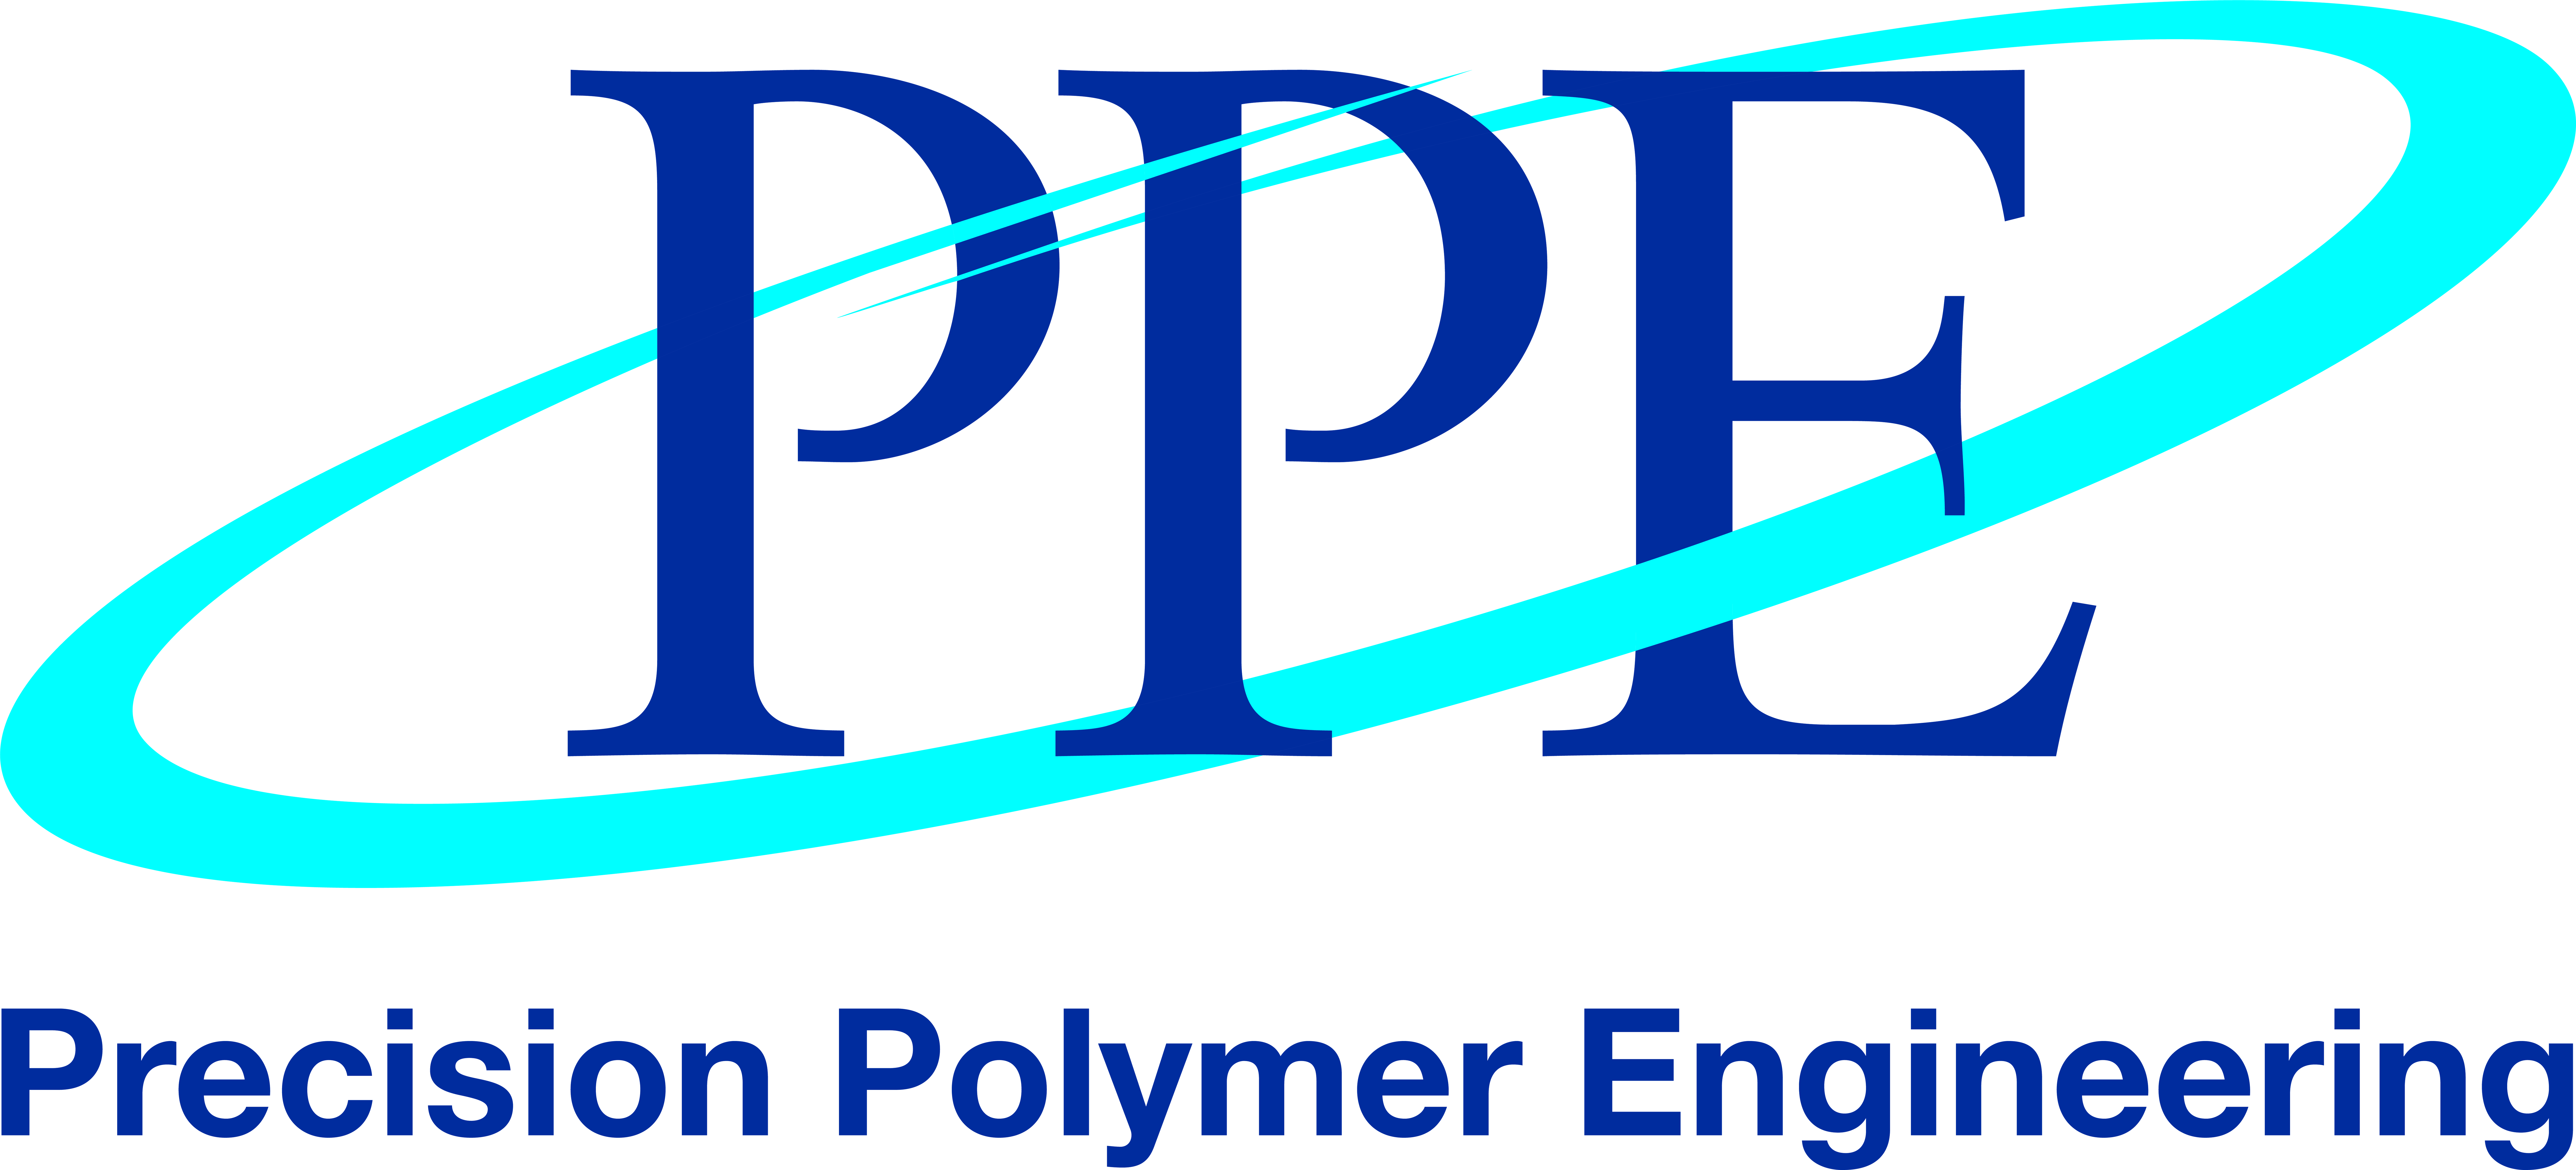 Precision Polymer Engineering